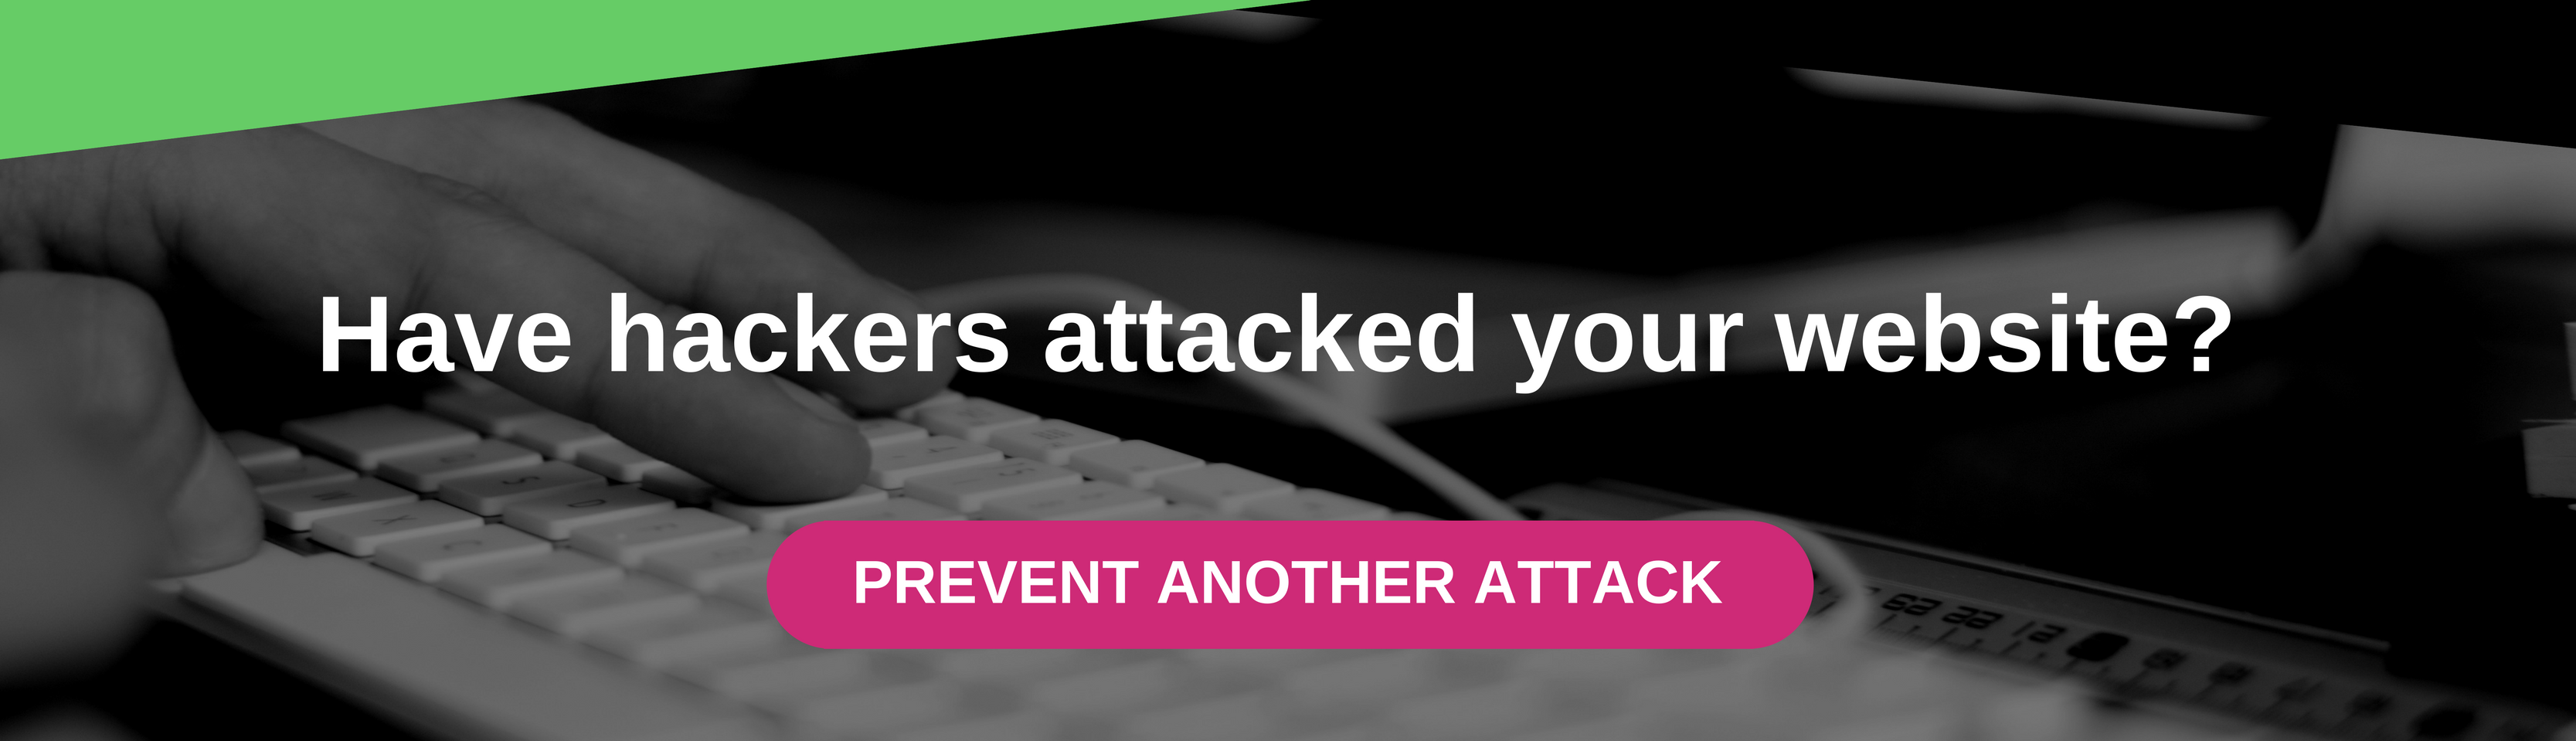 Have hackers attacked your website? - Prevent another attack